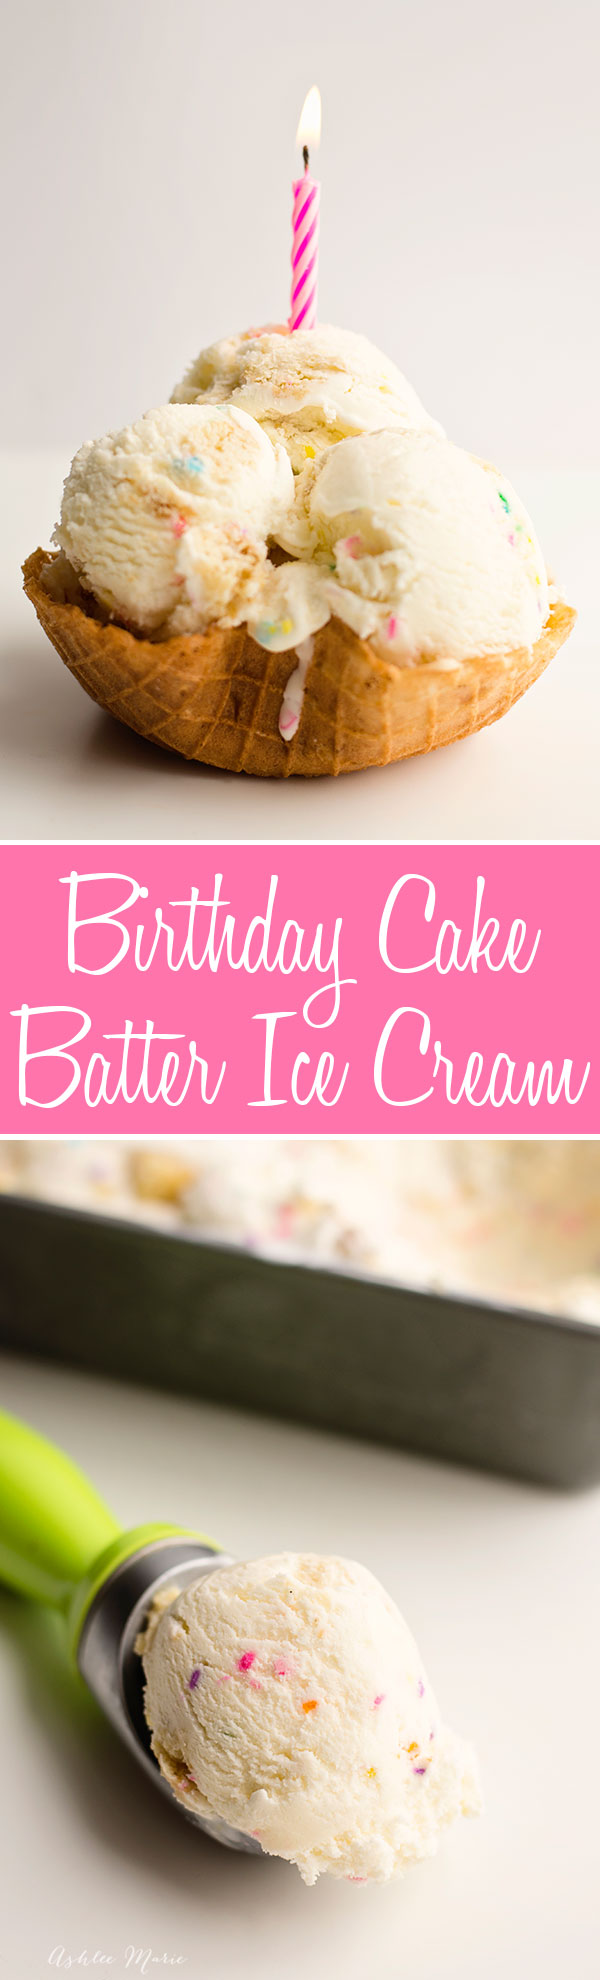 one of my favorite ice cream flavors is cake batter ice cream, made with dry cake mix and mixed with pieces of white cake and sprinkles it is always a hit